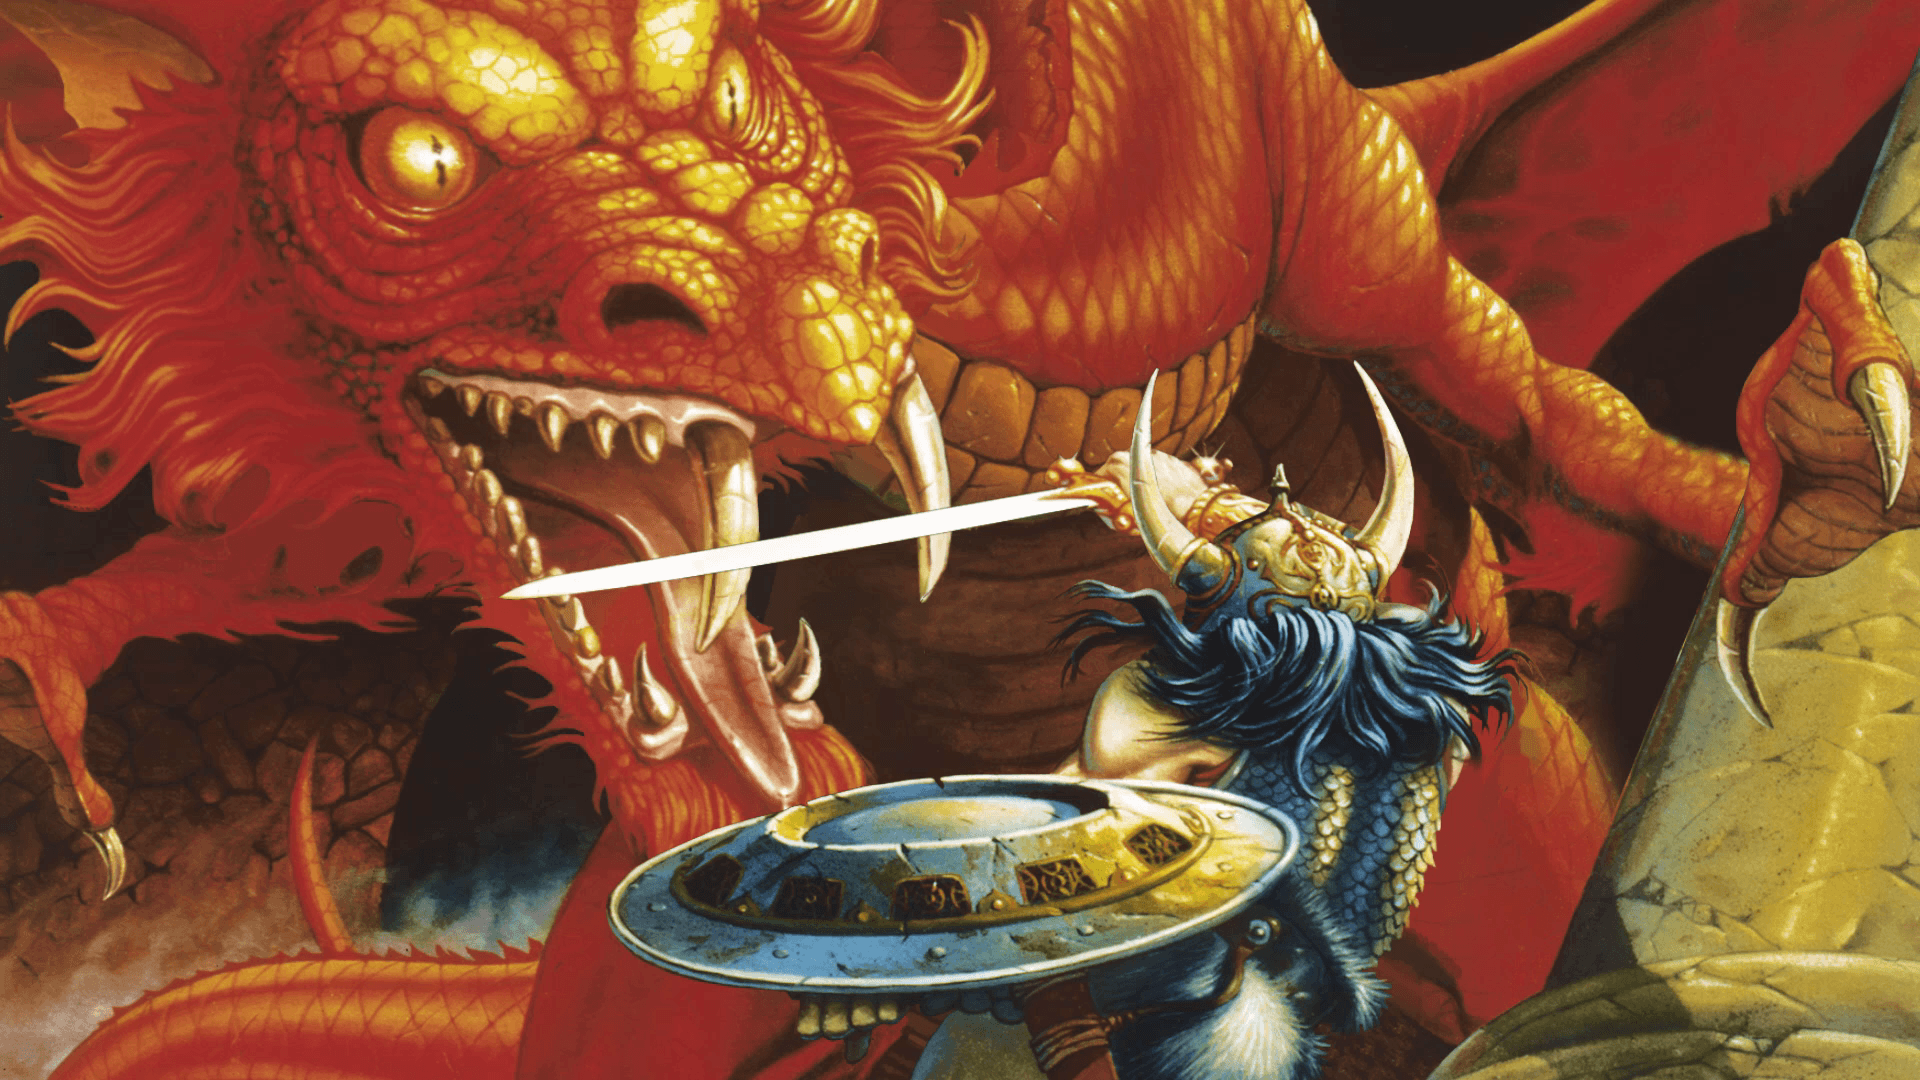 Dungeons And Dragons Retro Art Wallpapers - Wallpaper Cave